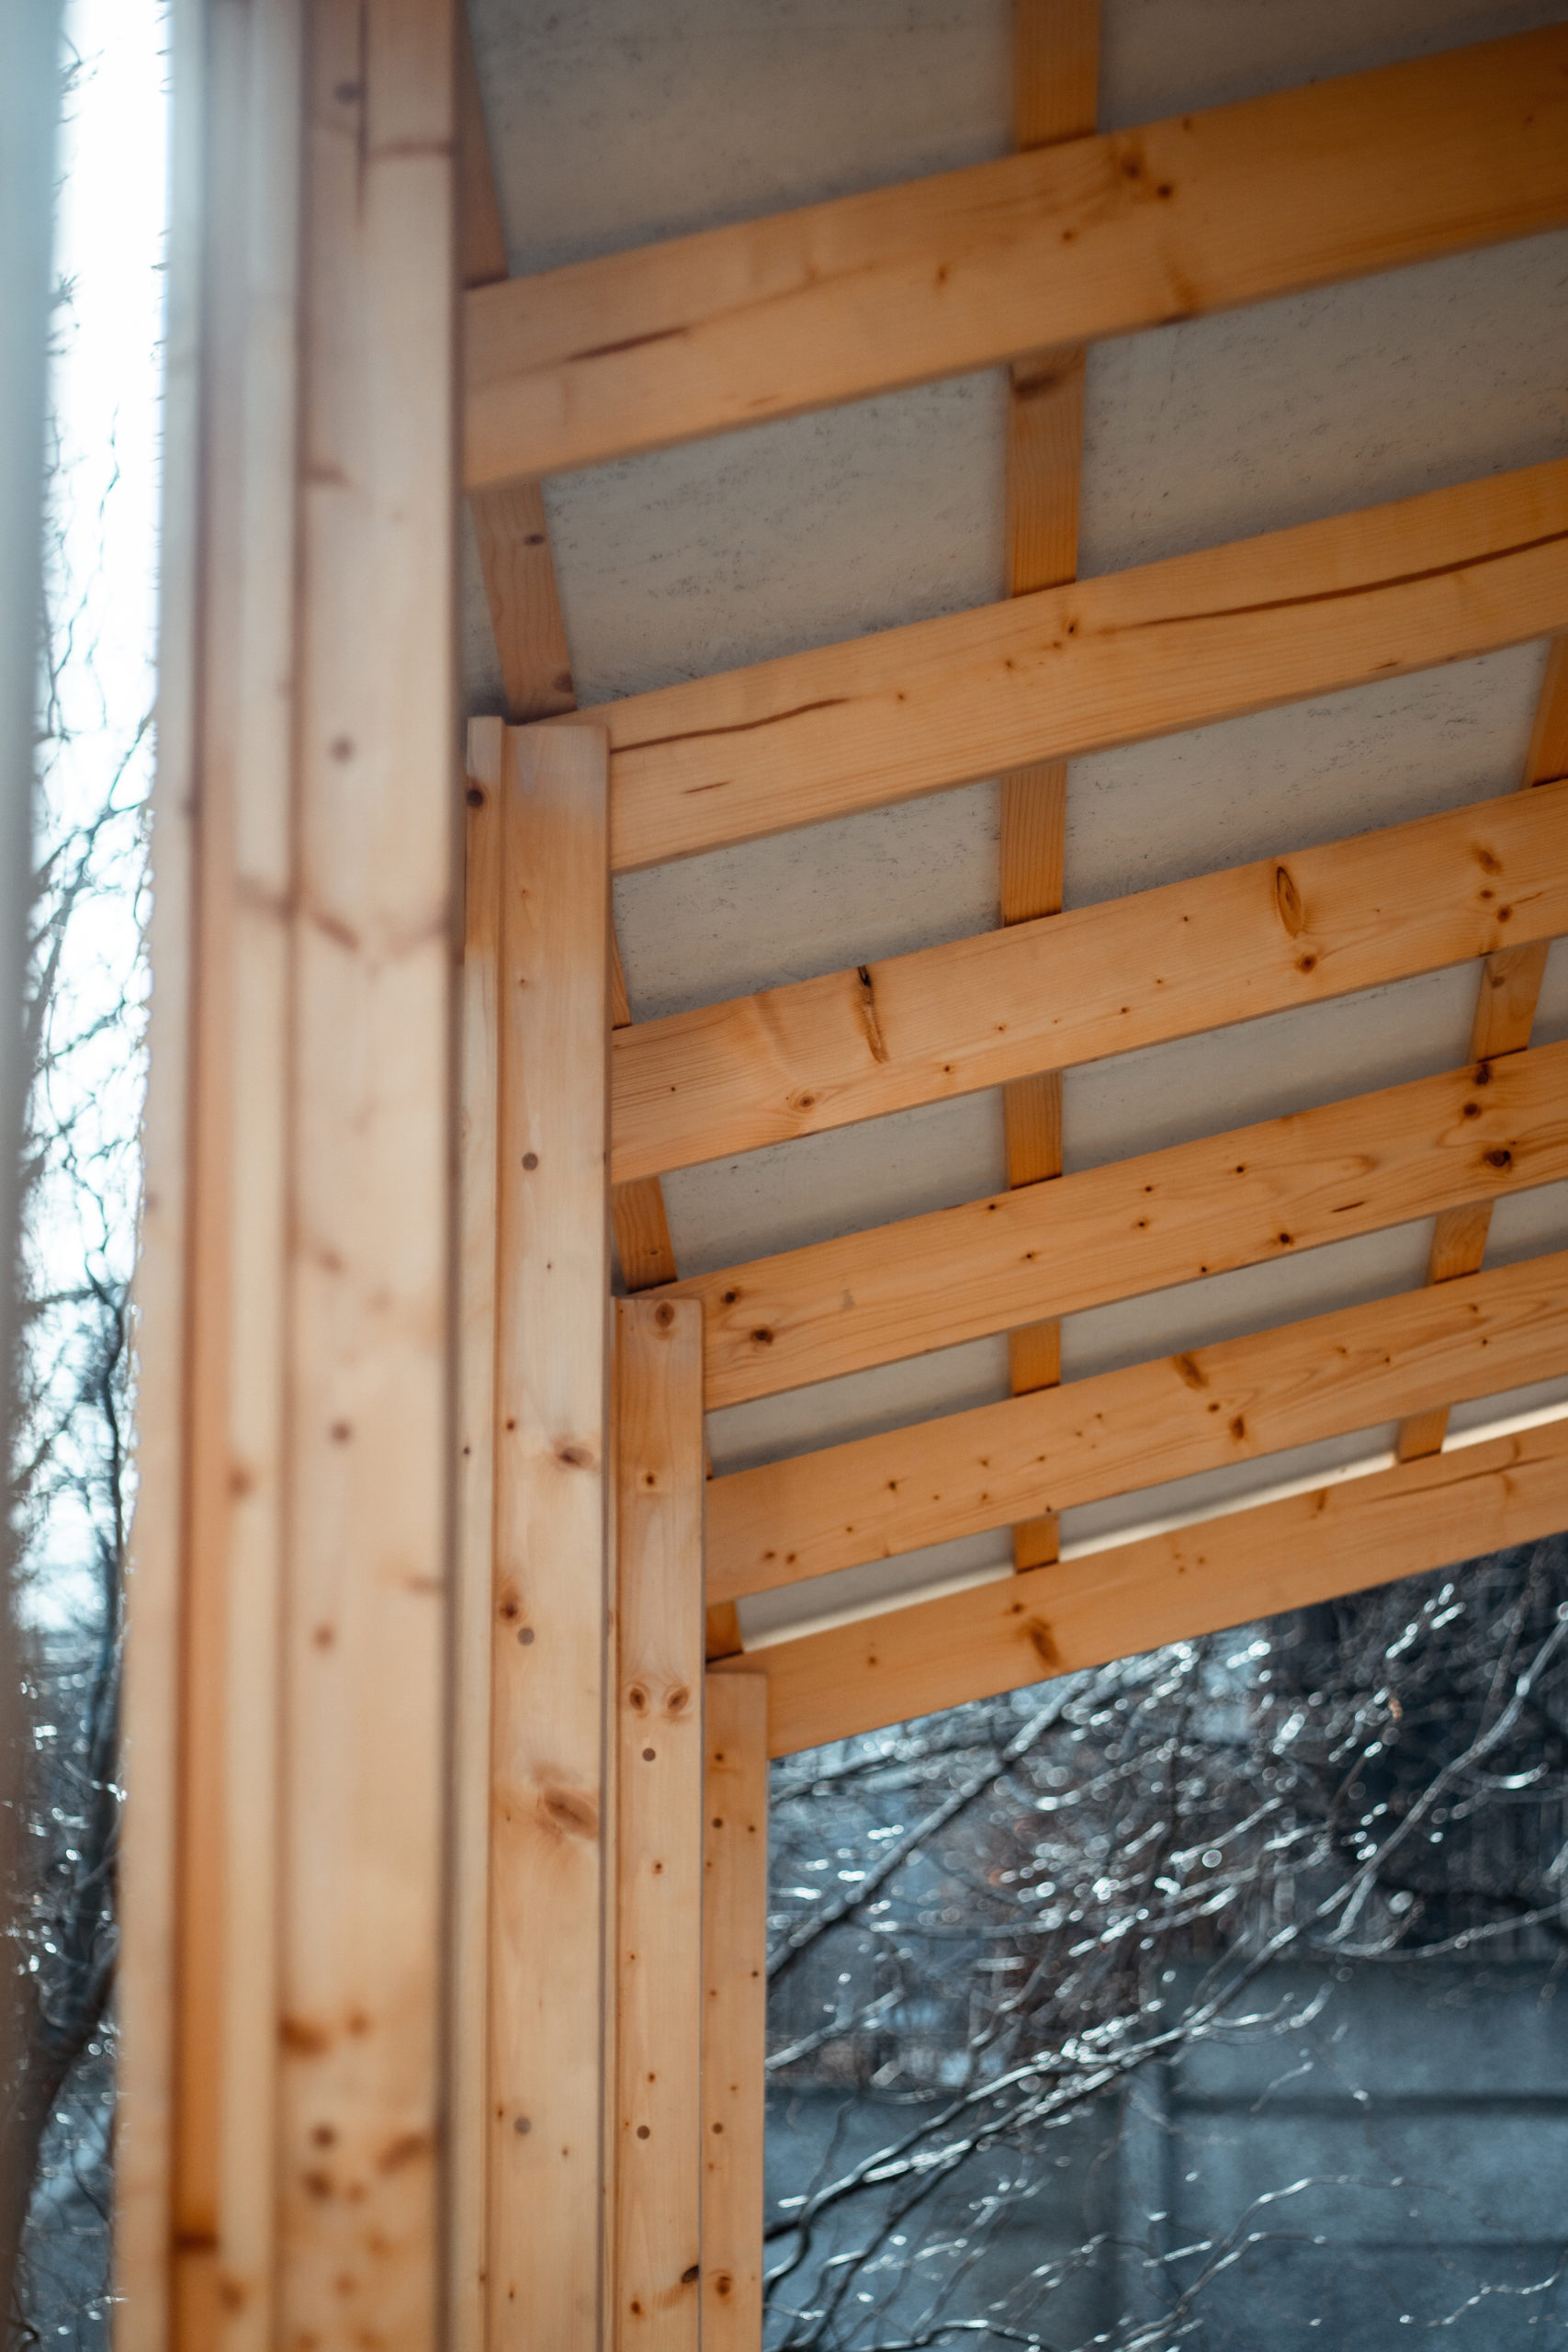 Rafters made out of evergreen wood planks are inserted into the wooden pillars.